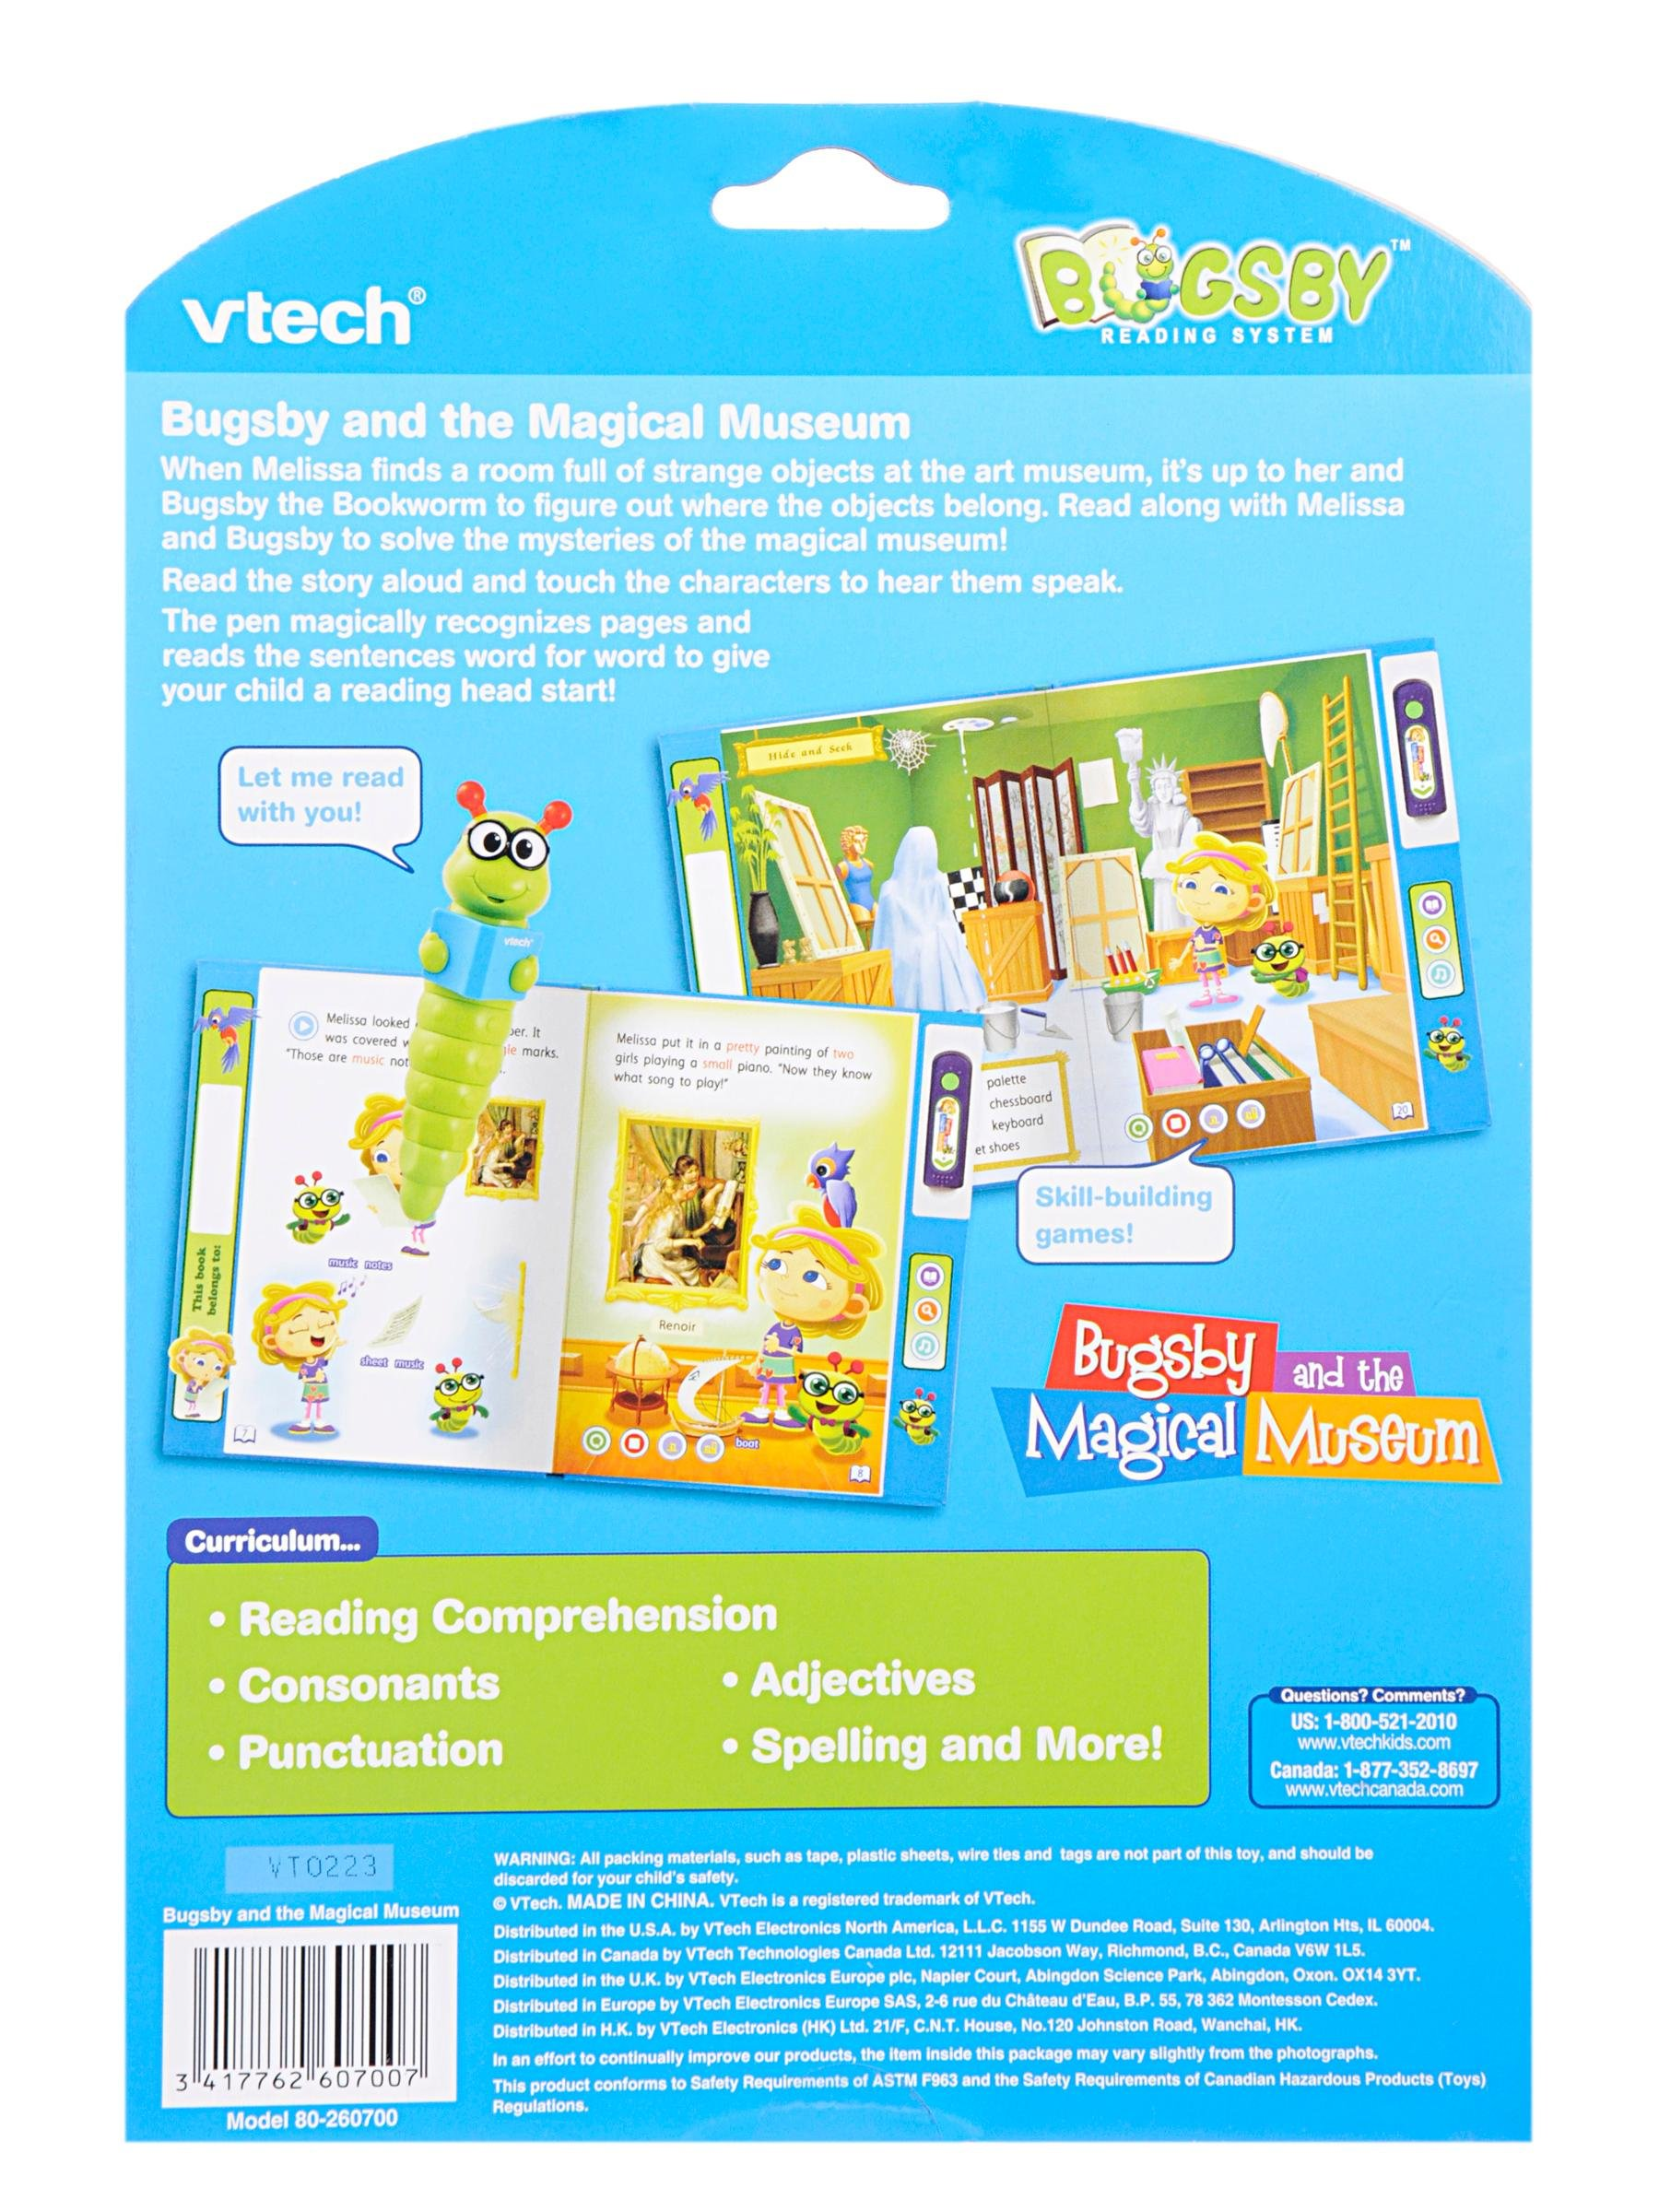 VTech Bugsby Reading System Book - Bugsby and The Magical Museum by VTech (Image #2)